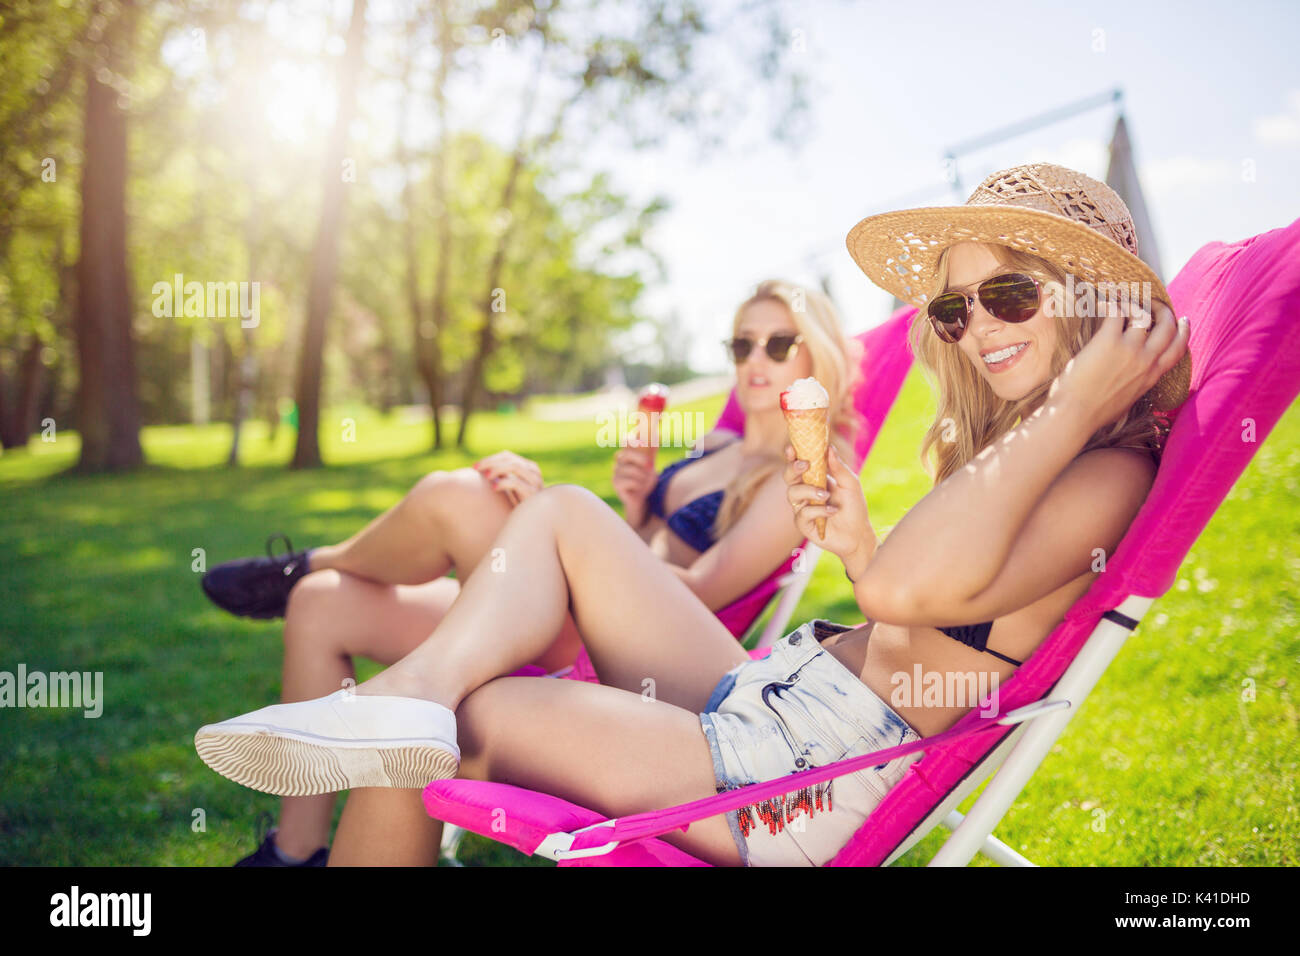 A photo of two female friends spending their free time relaxing at the park and eating ice cream. - Stock Image